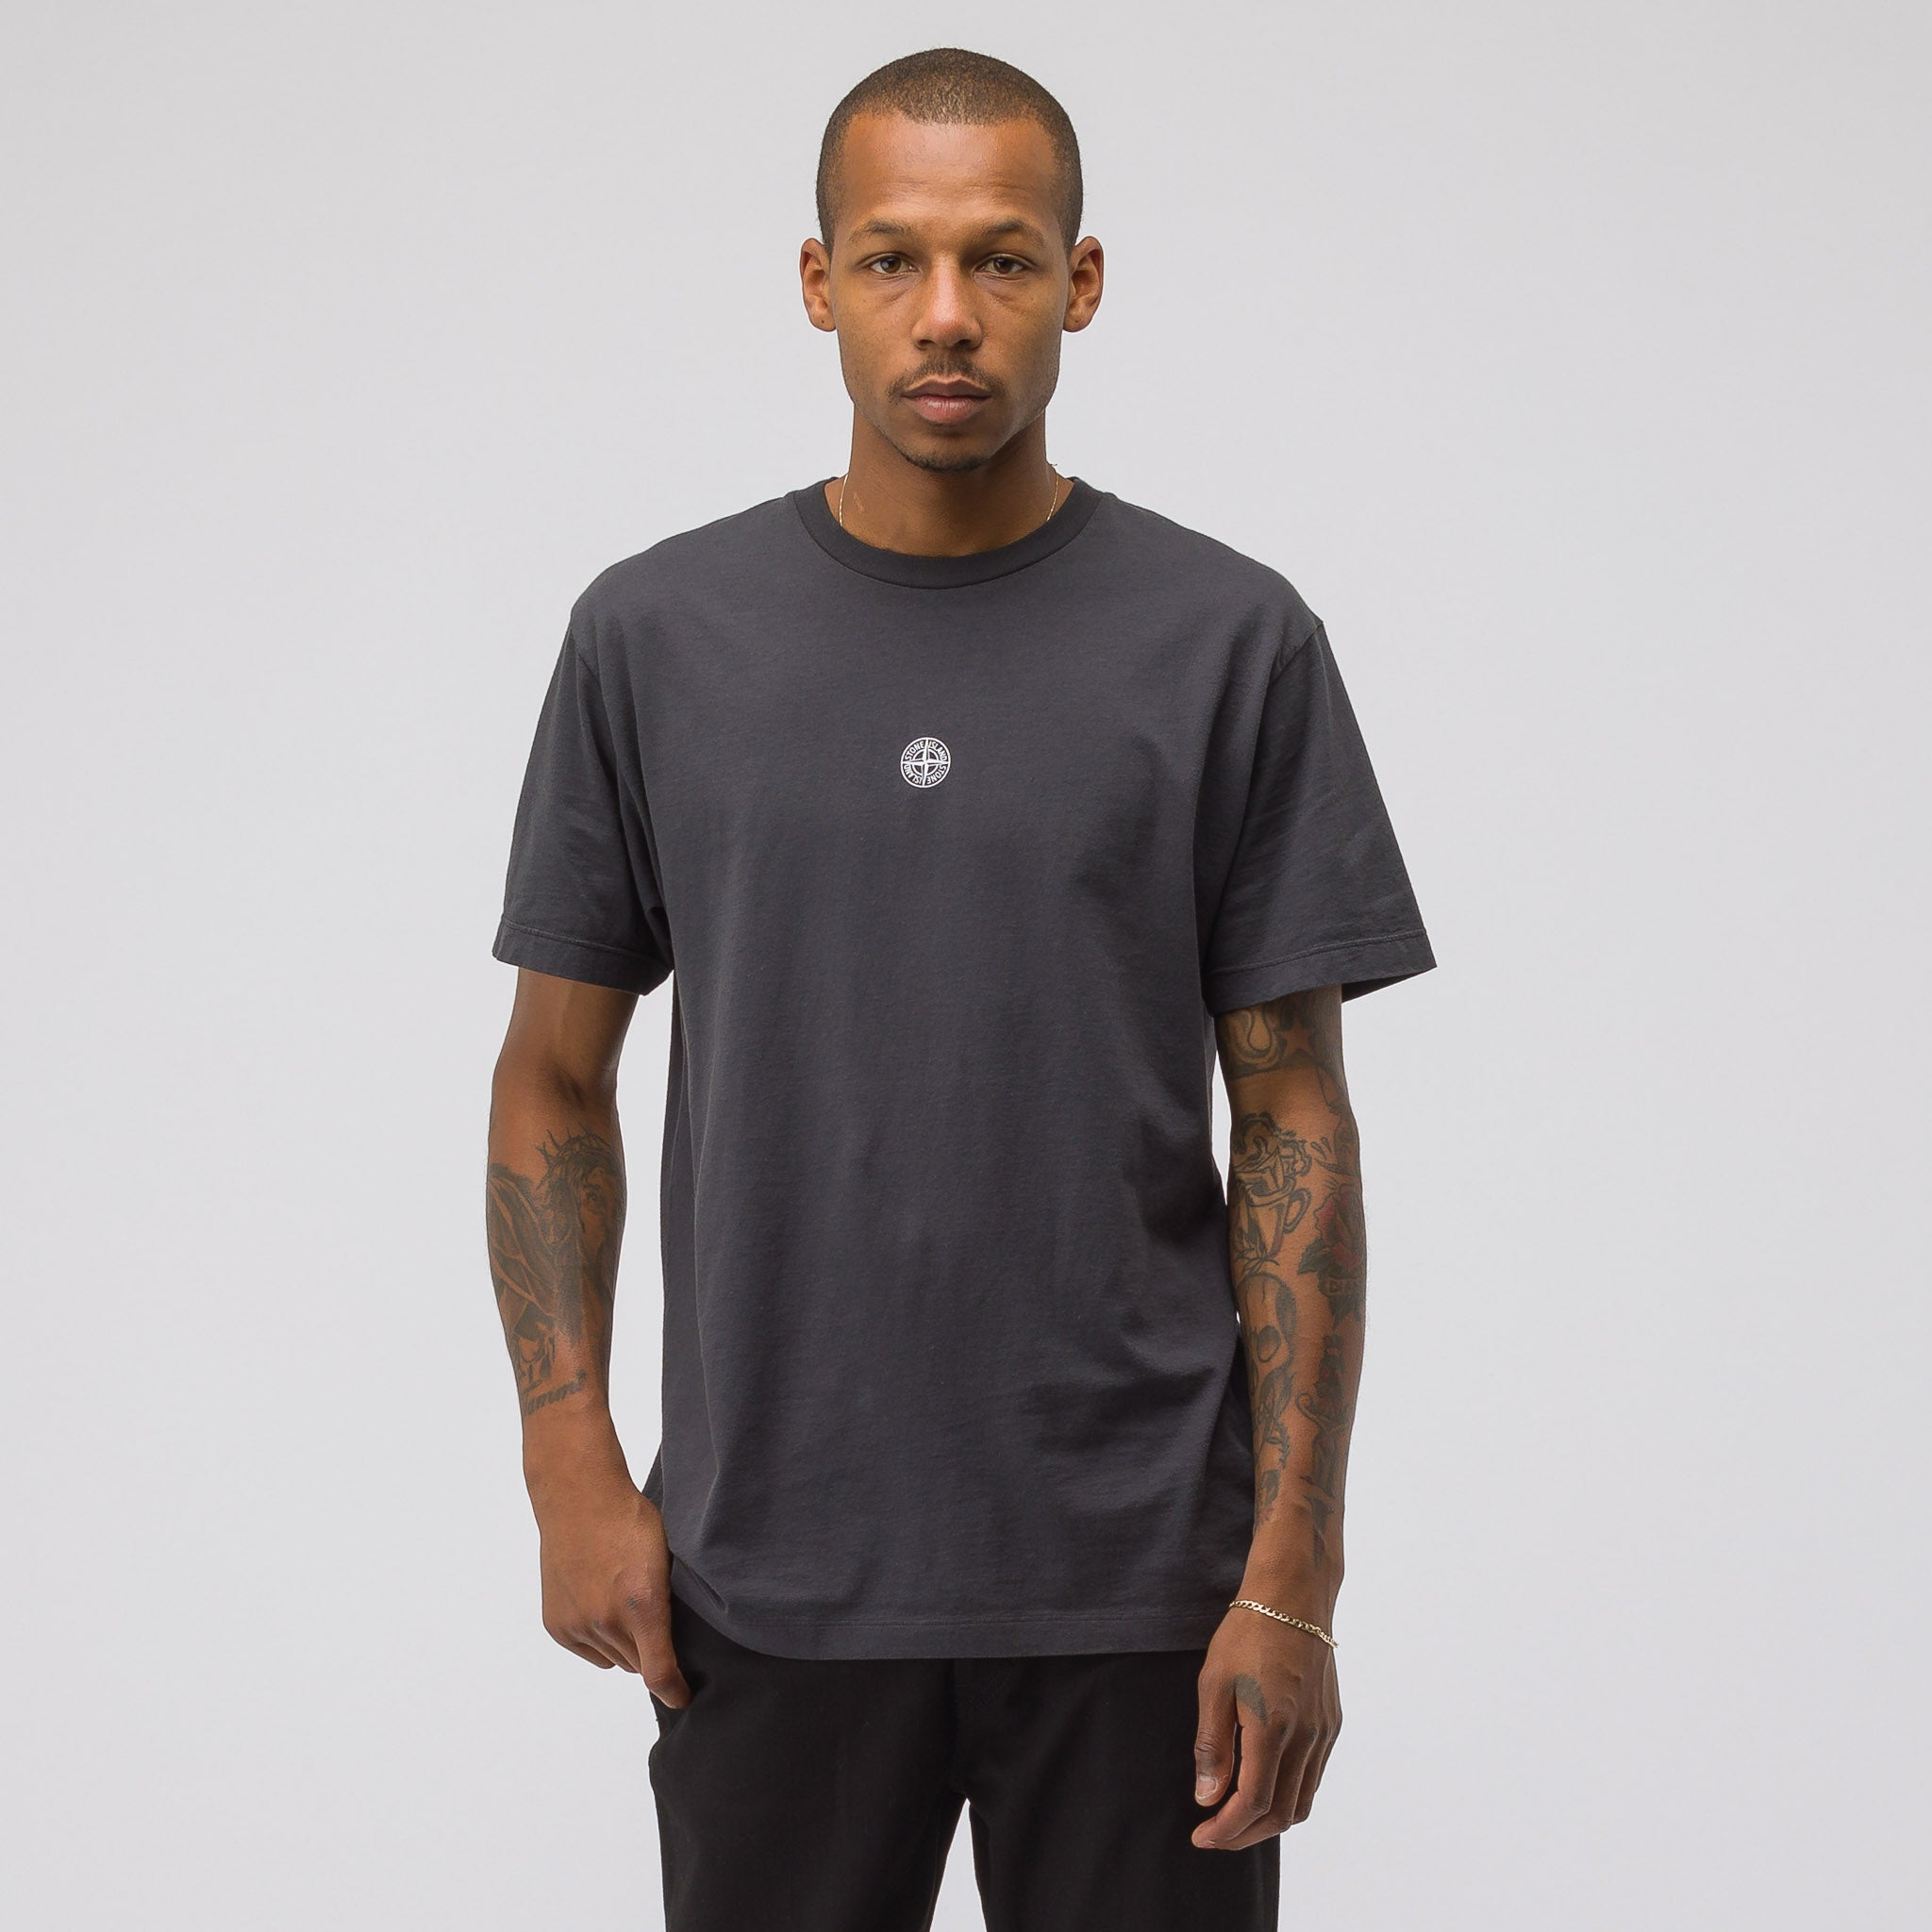 2NS85 T-Shirt in Charcoal